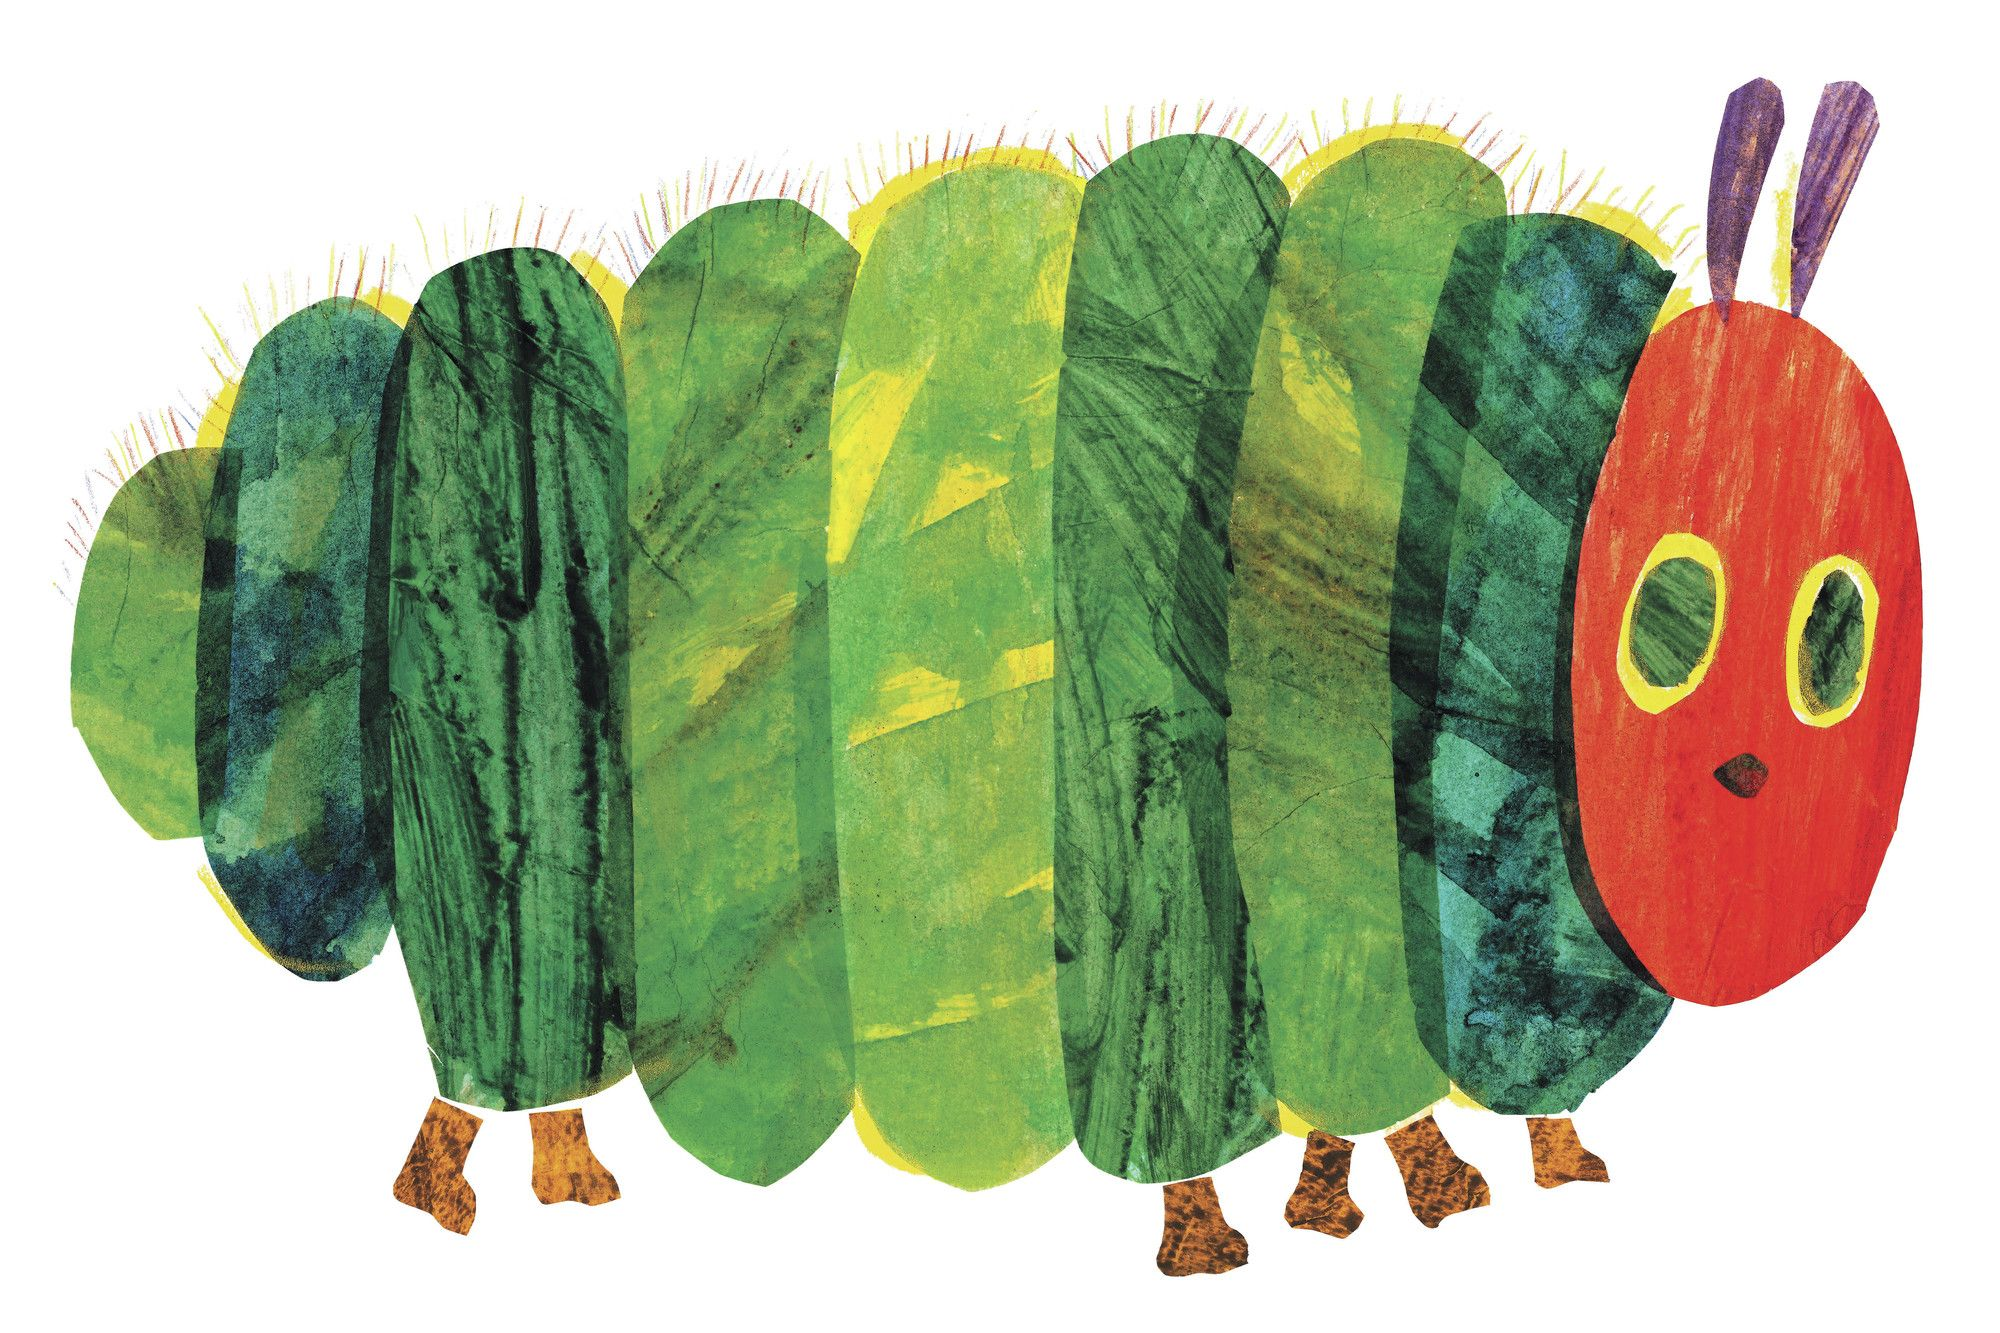 The Very Hungry Caterpillar Character Caterpillar Fat By